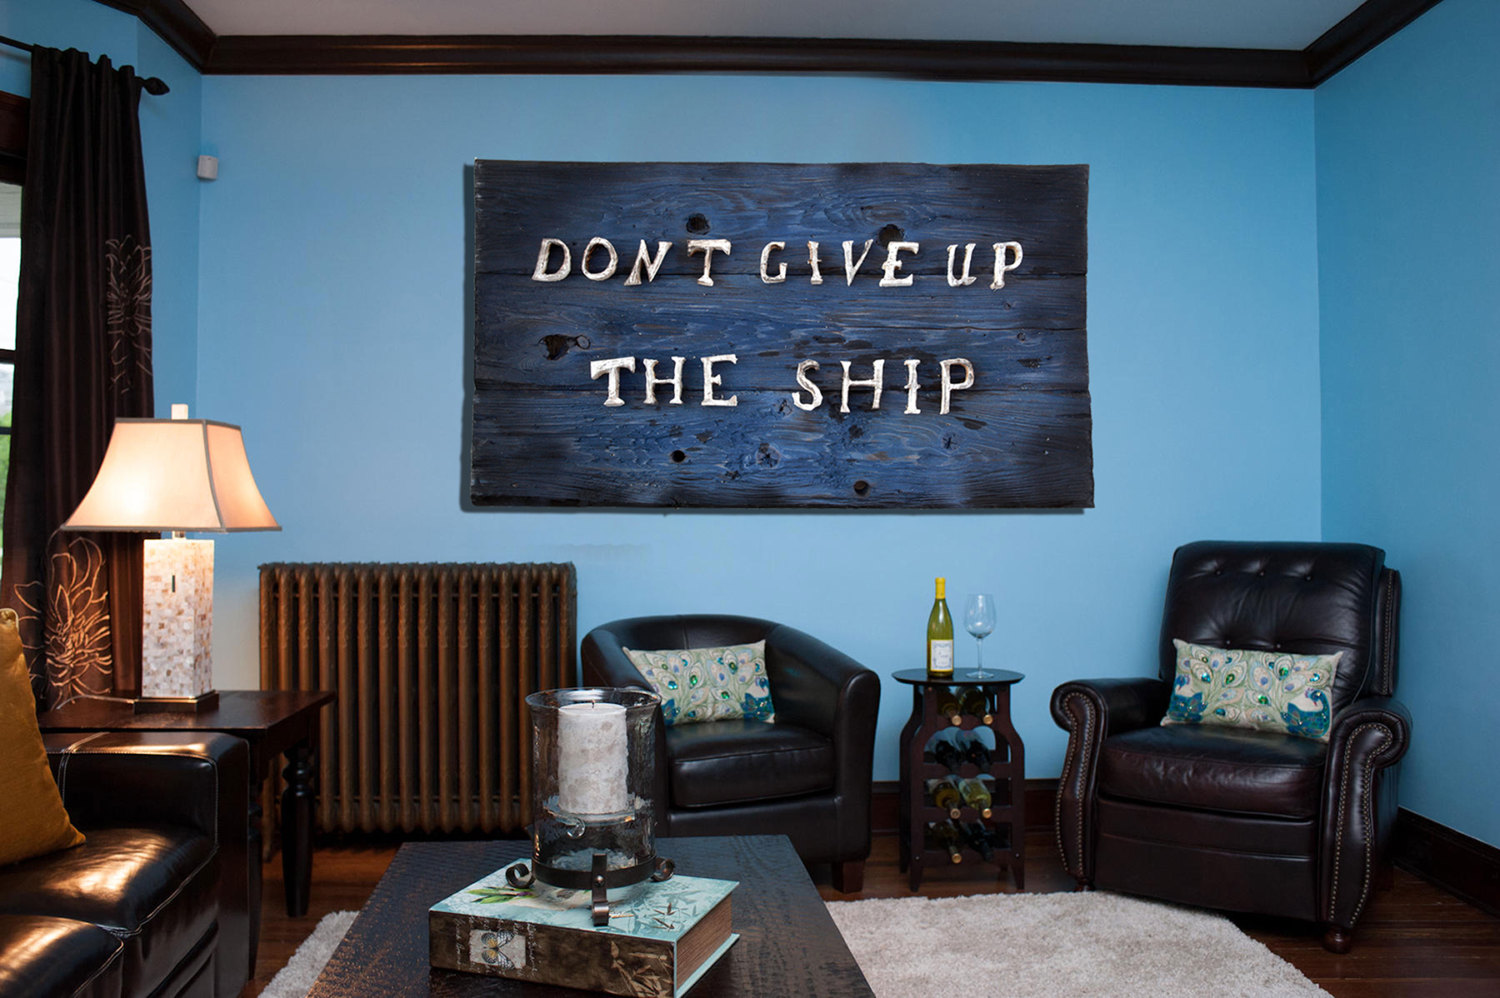 Donu0027t Give Up The Ship, Original Version, Distressed Wood, Home Decor